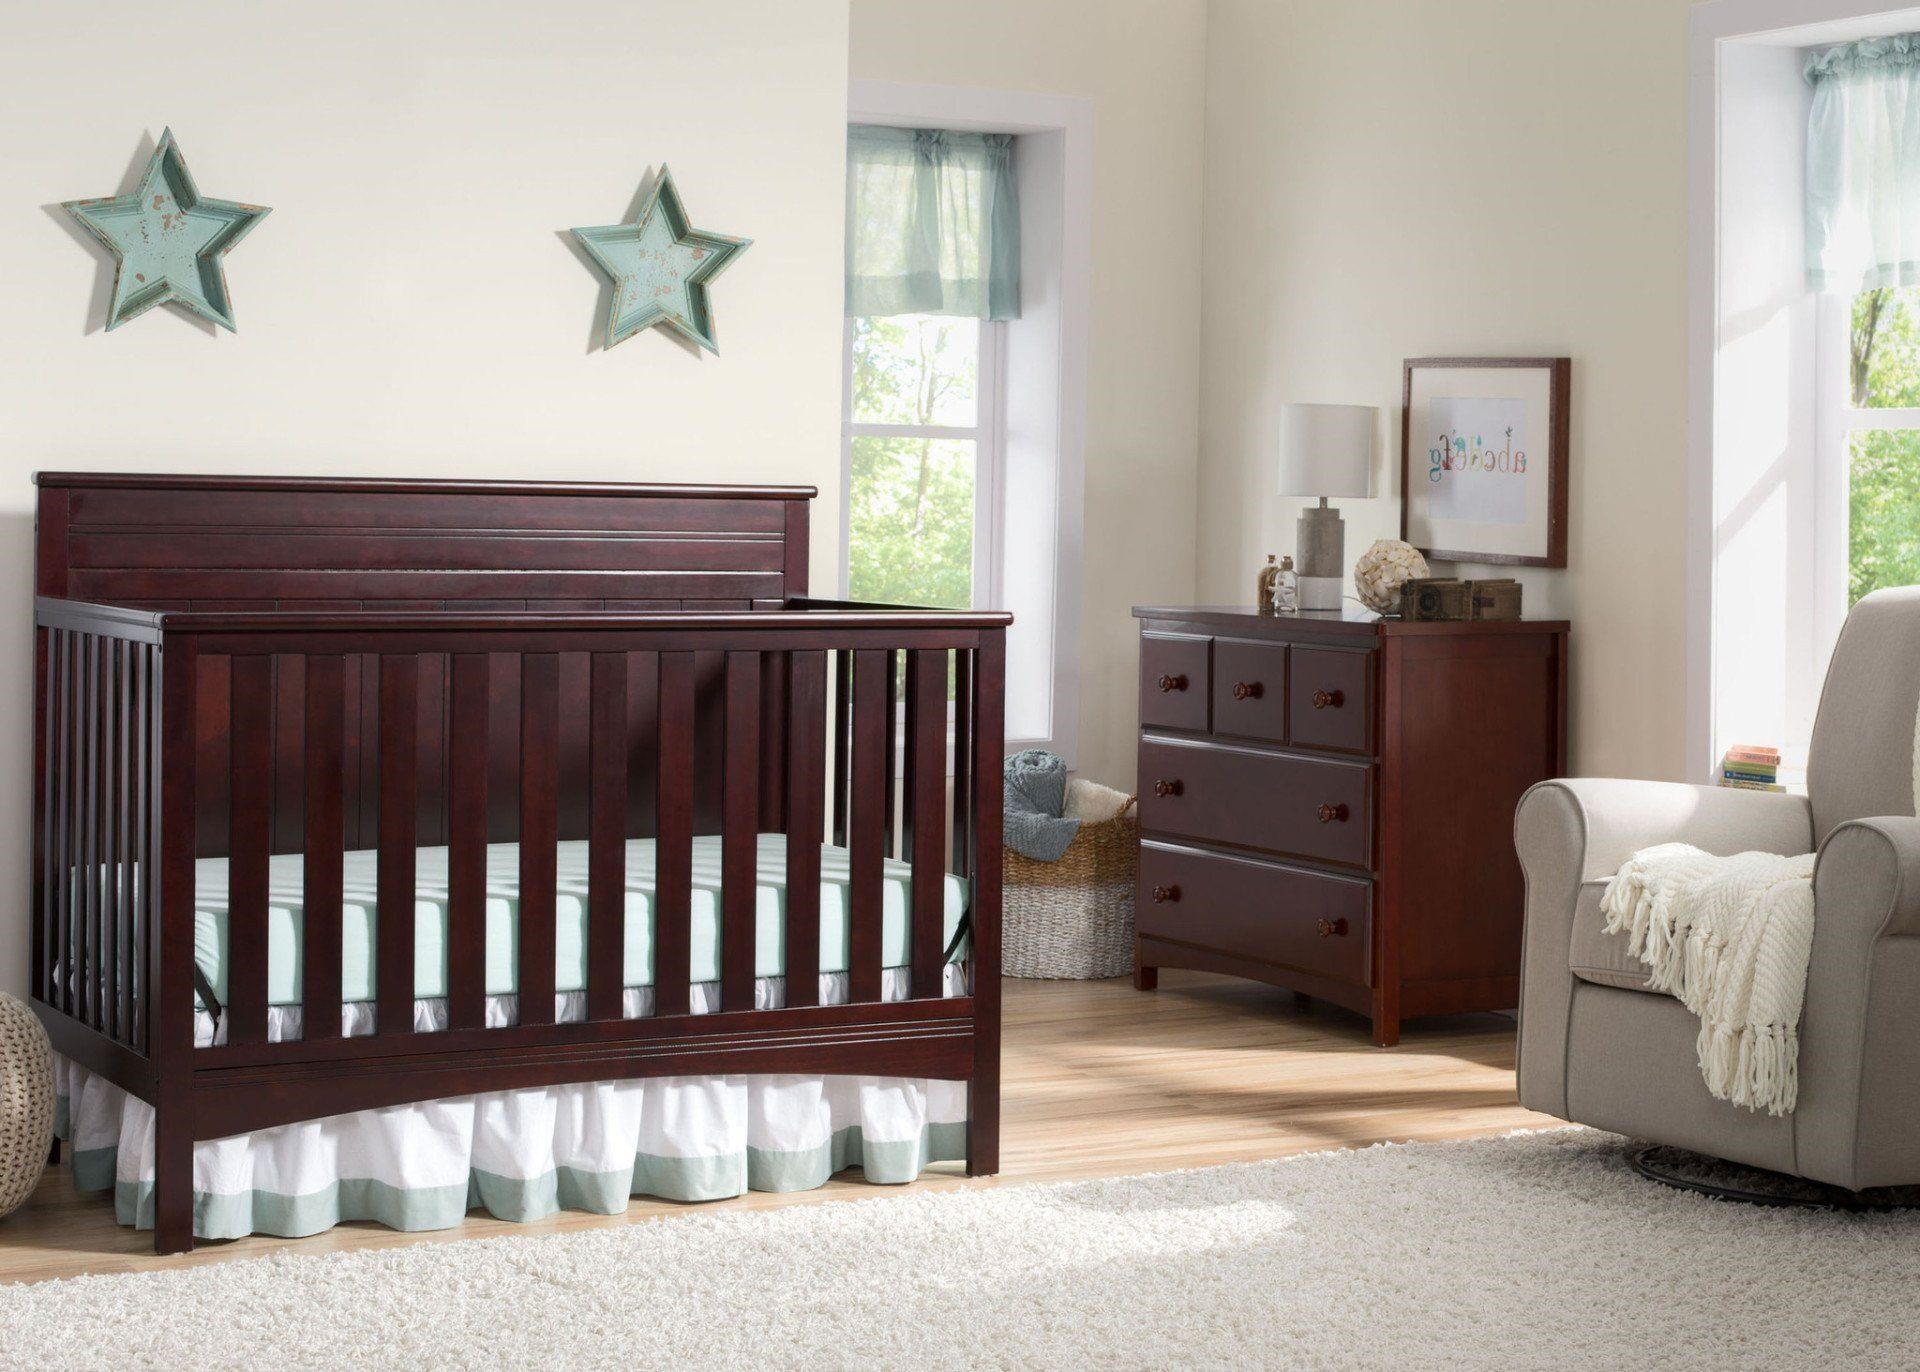 Townsend Crib in Chocolate